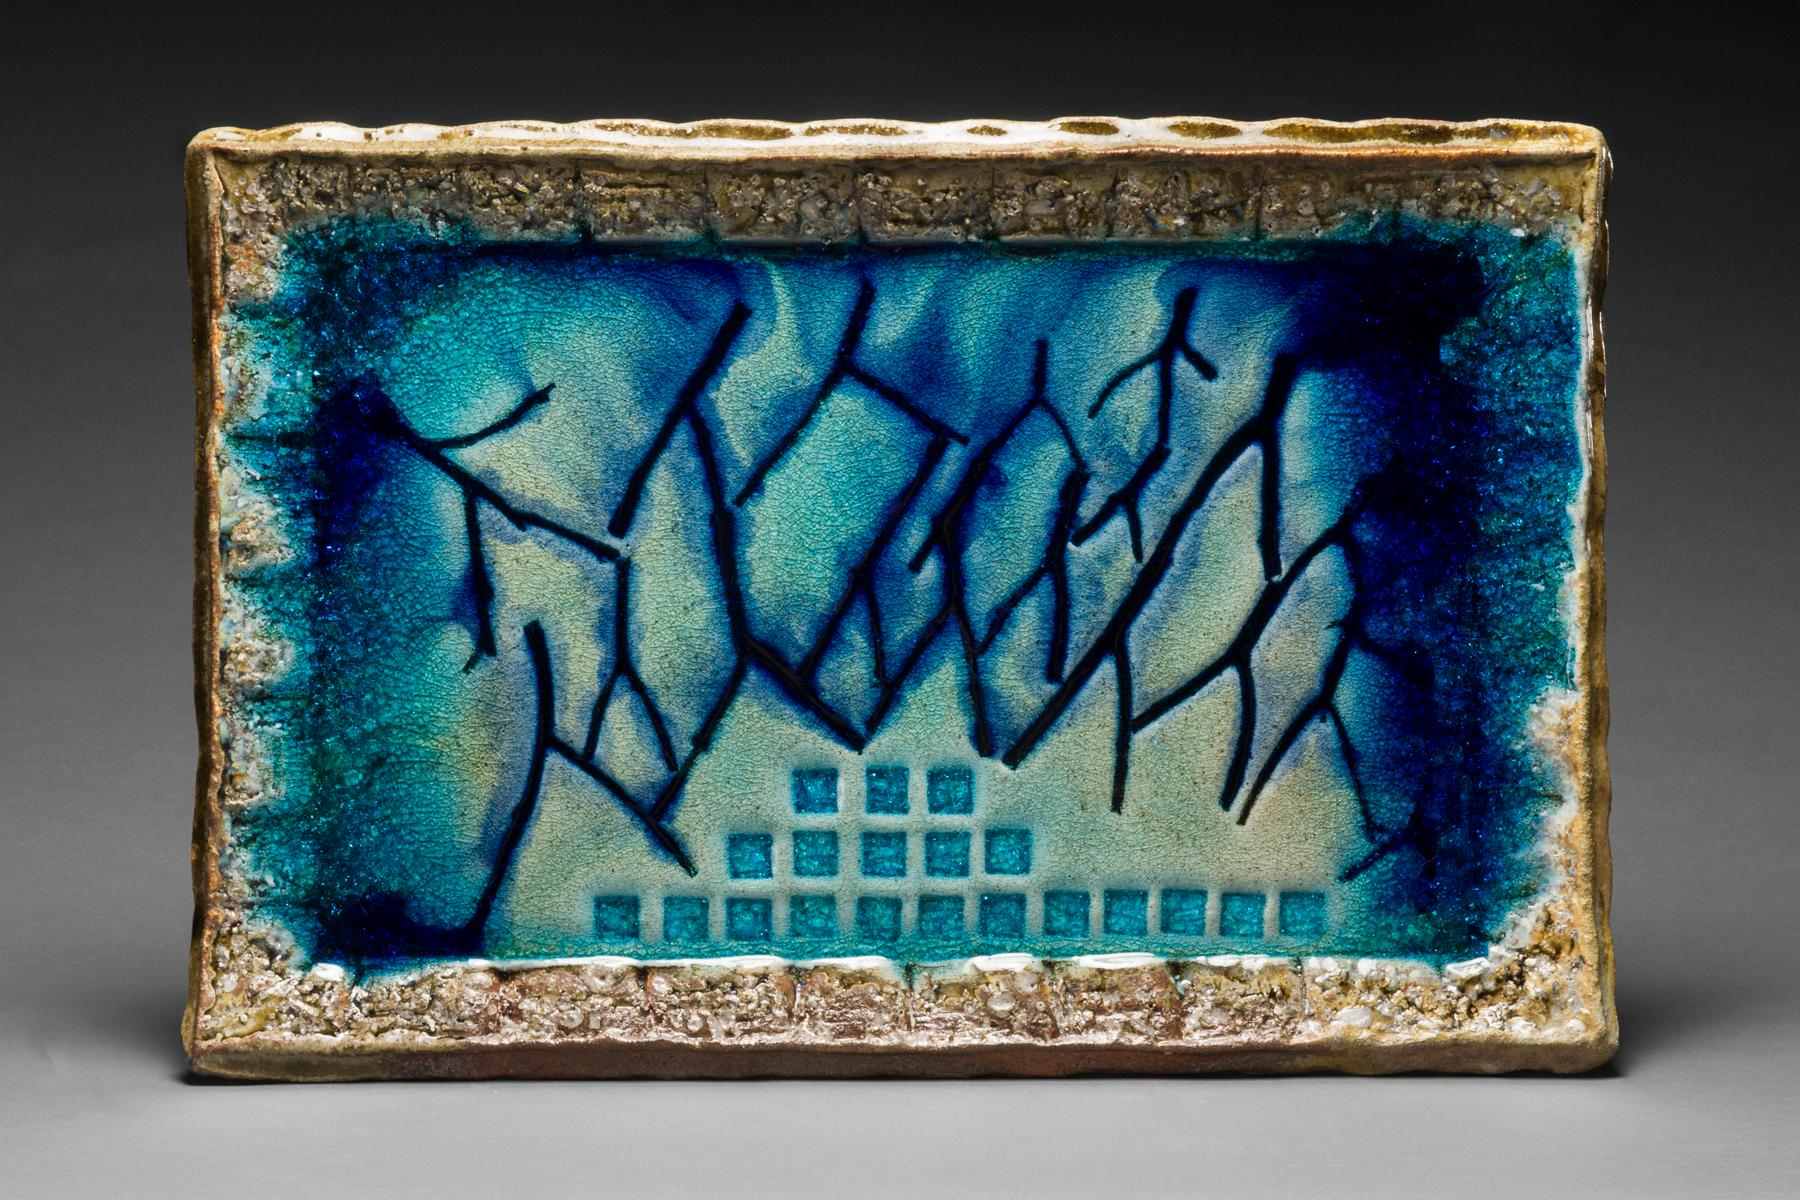 Wood Fired Ceramic Painting: 'Fire Painting 11.6.18'